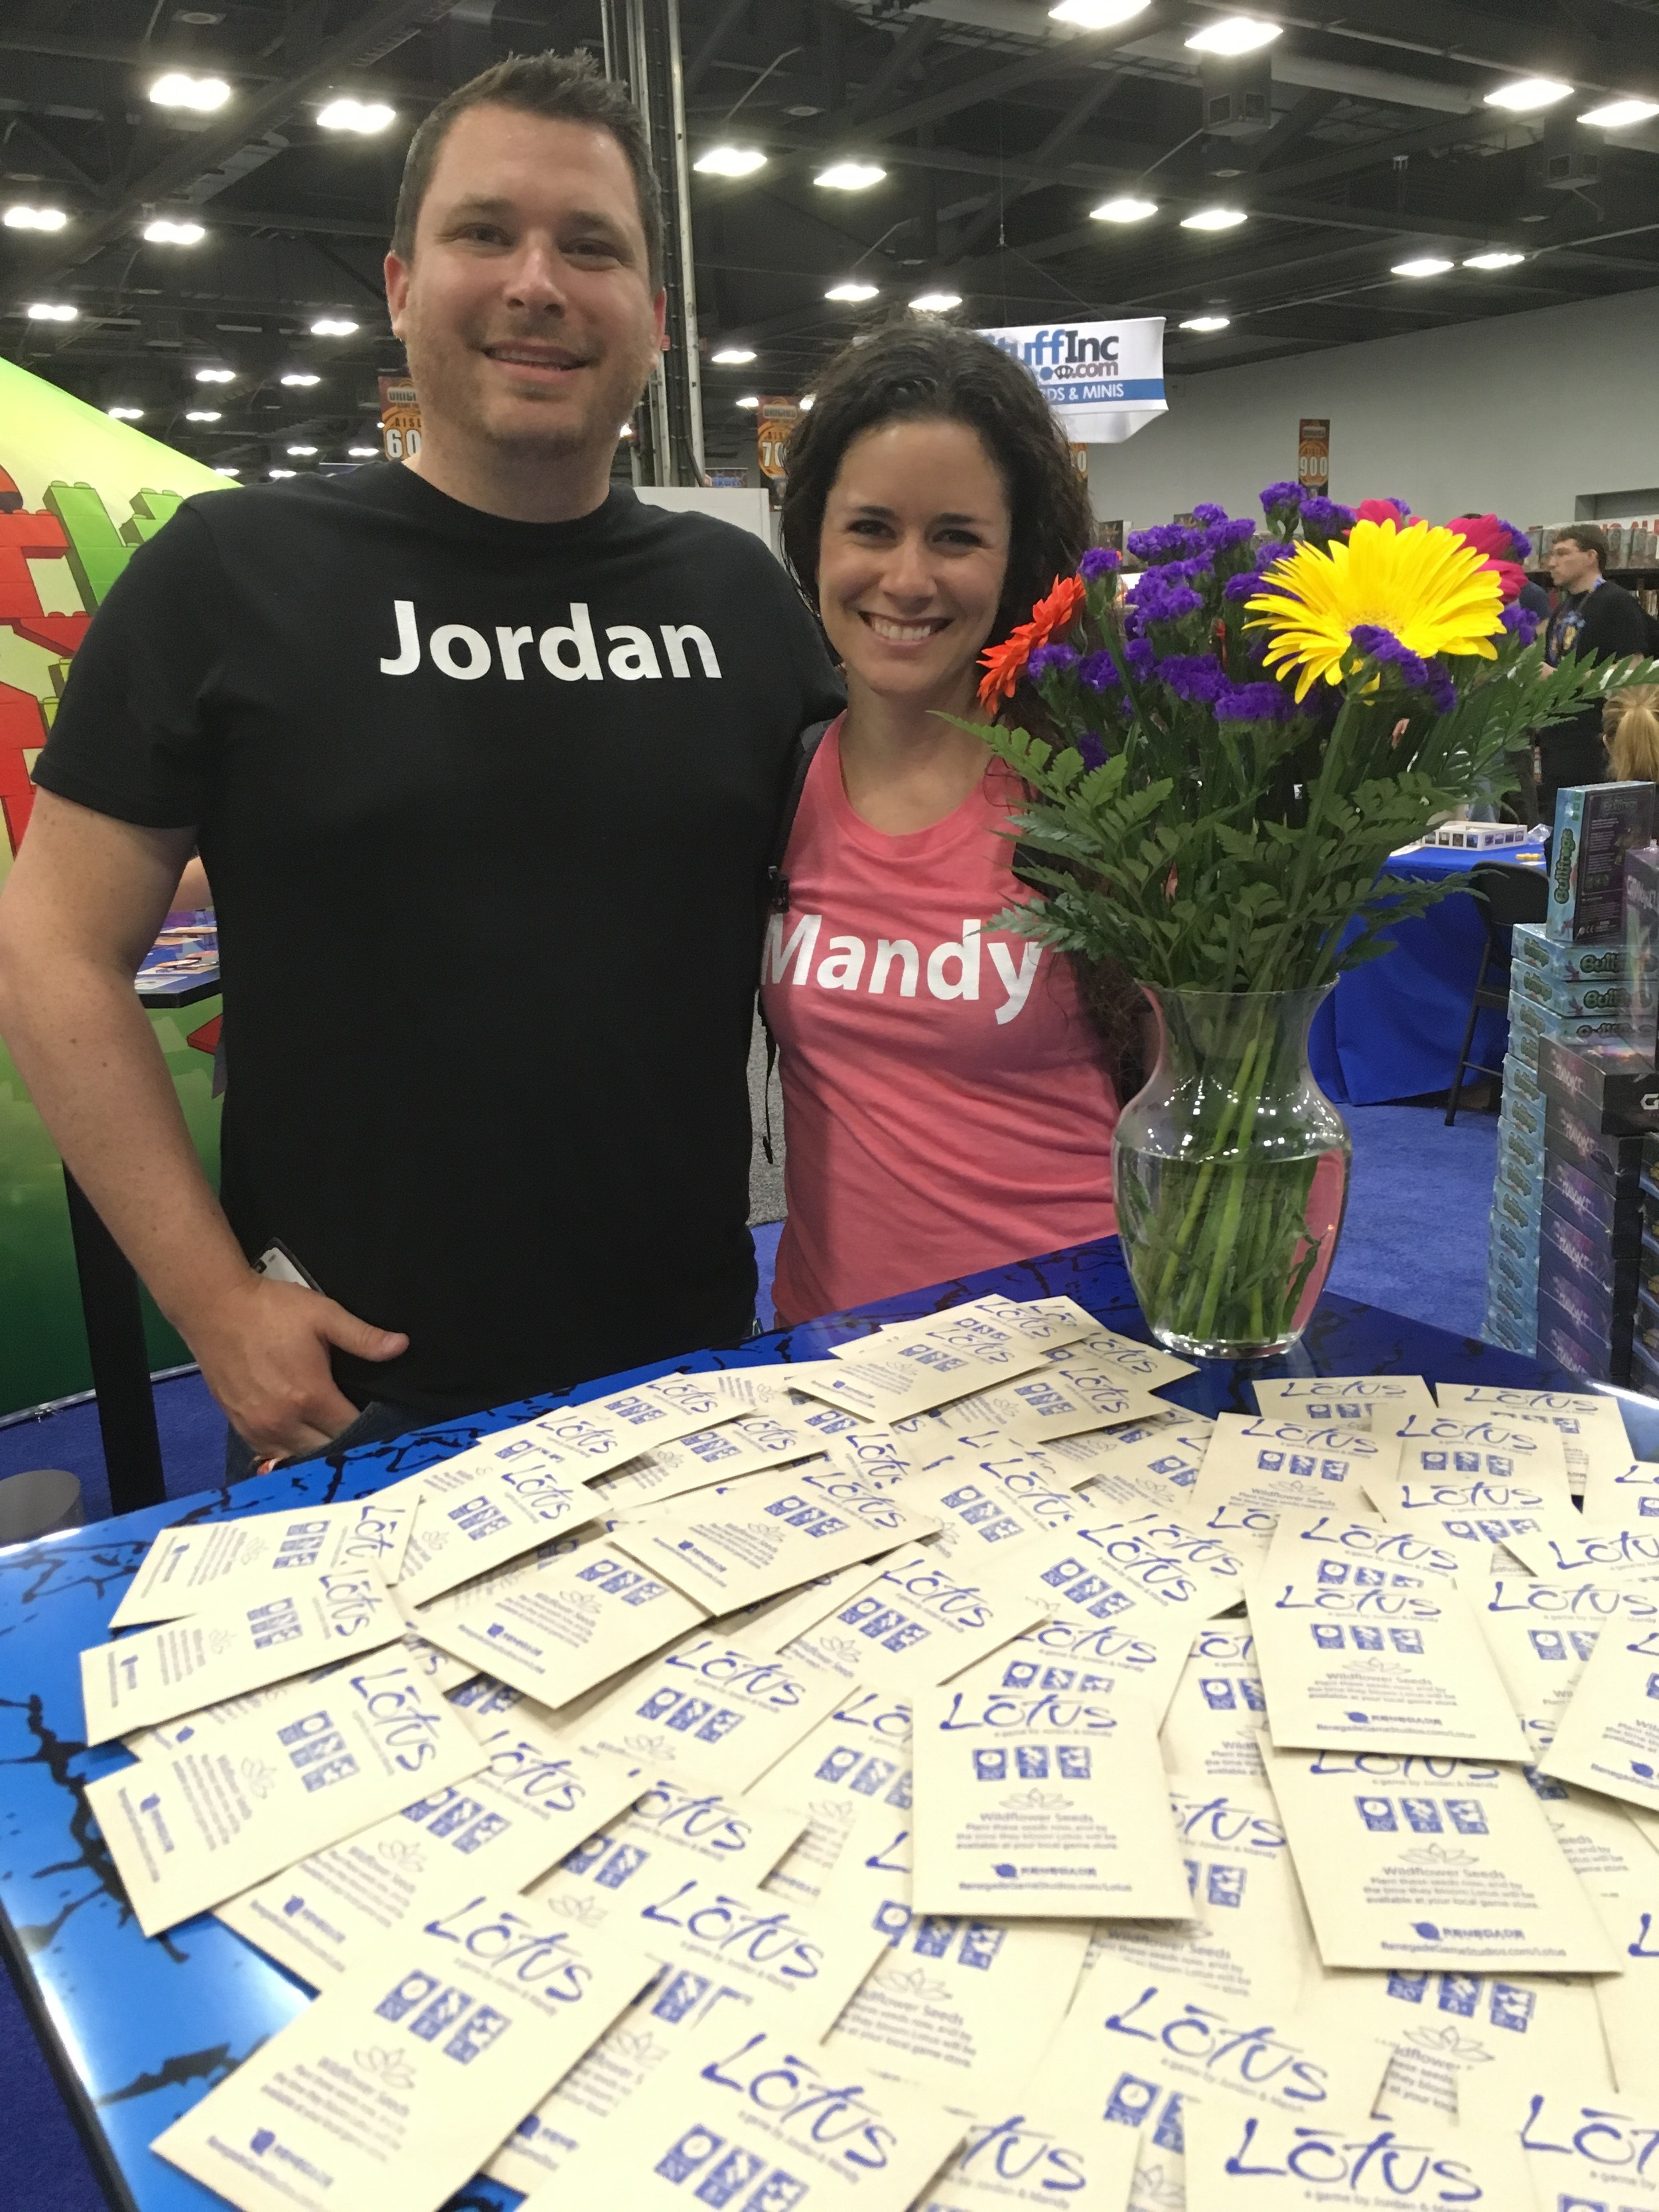 Jordan & Mandy with their wildflower packets to promote the upcoming game Lotus! Over 900 people got some flowers to plant.